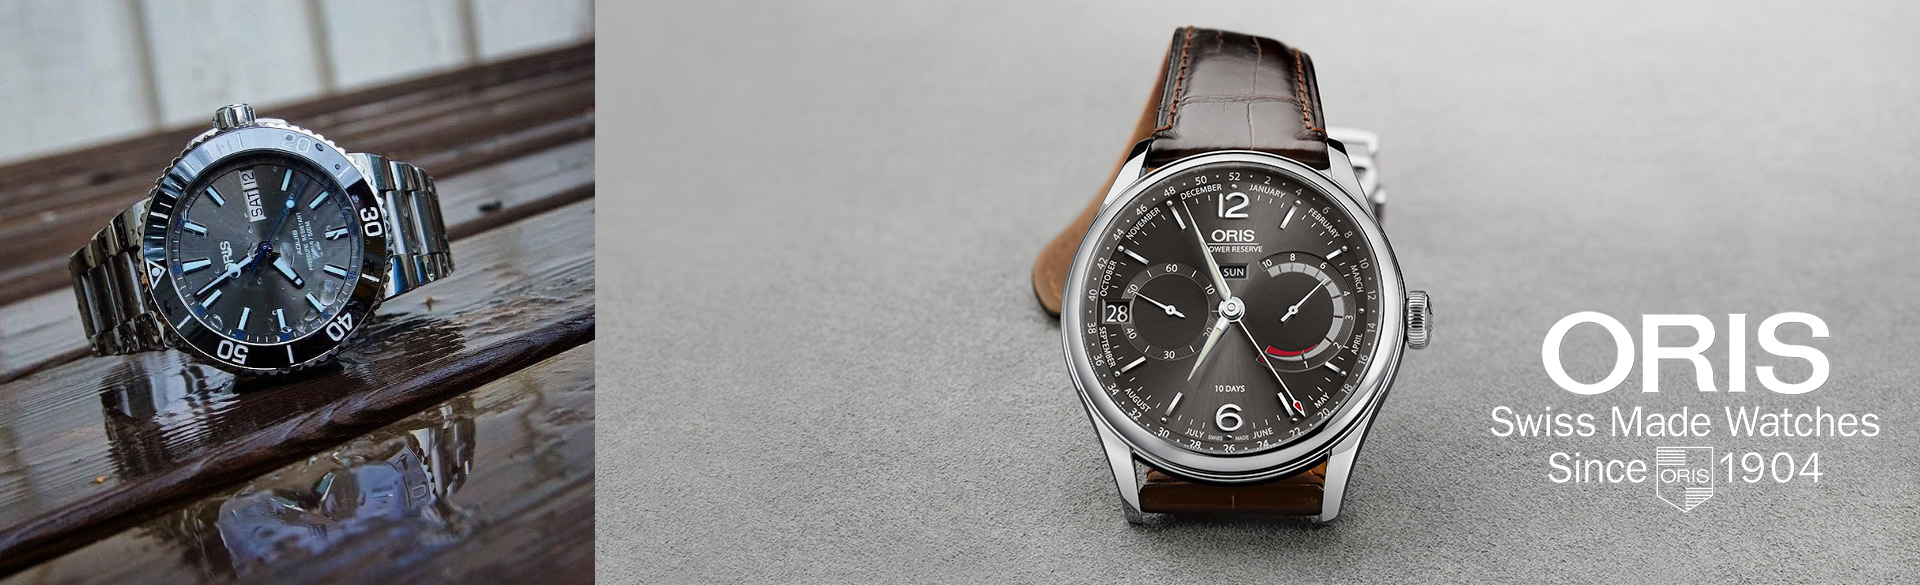 chronograph brashear introducing limited watches carl edition oris the